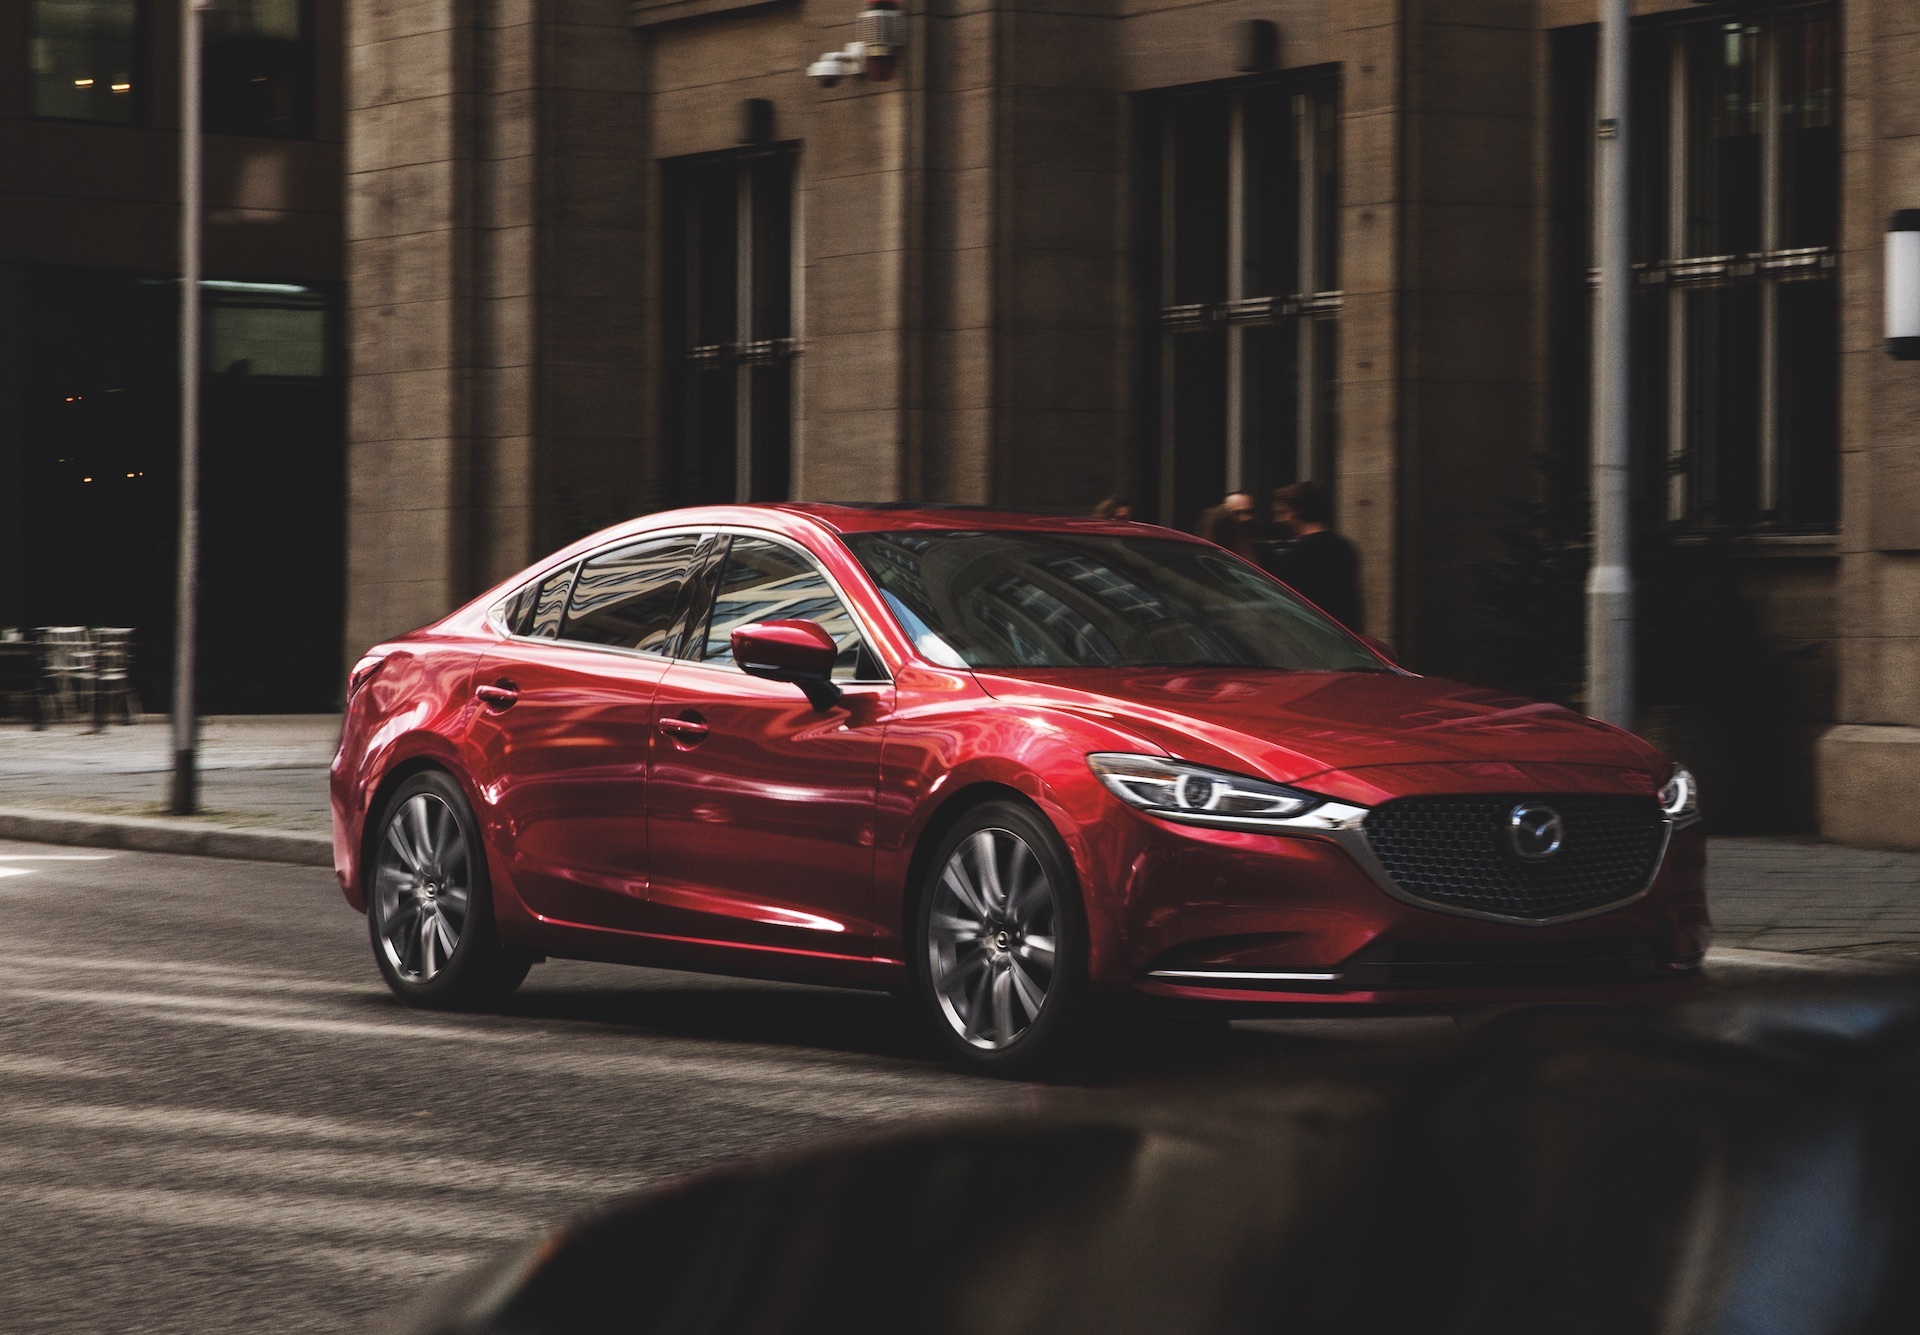 2020 Mazda Mazda6 Review Ratings Specs Prices And Photos